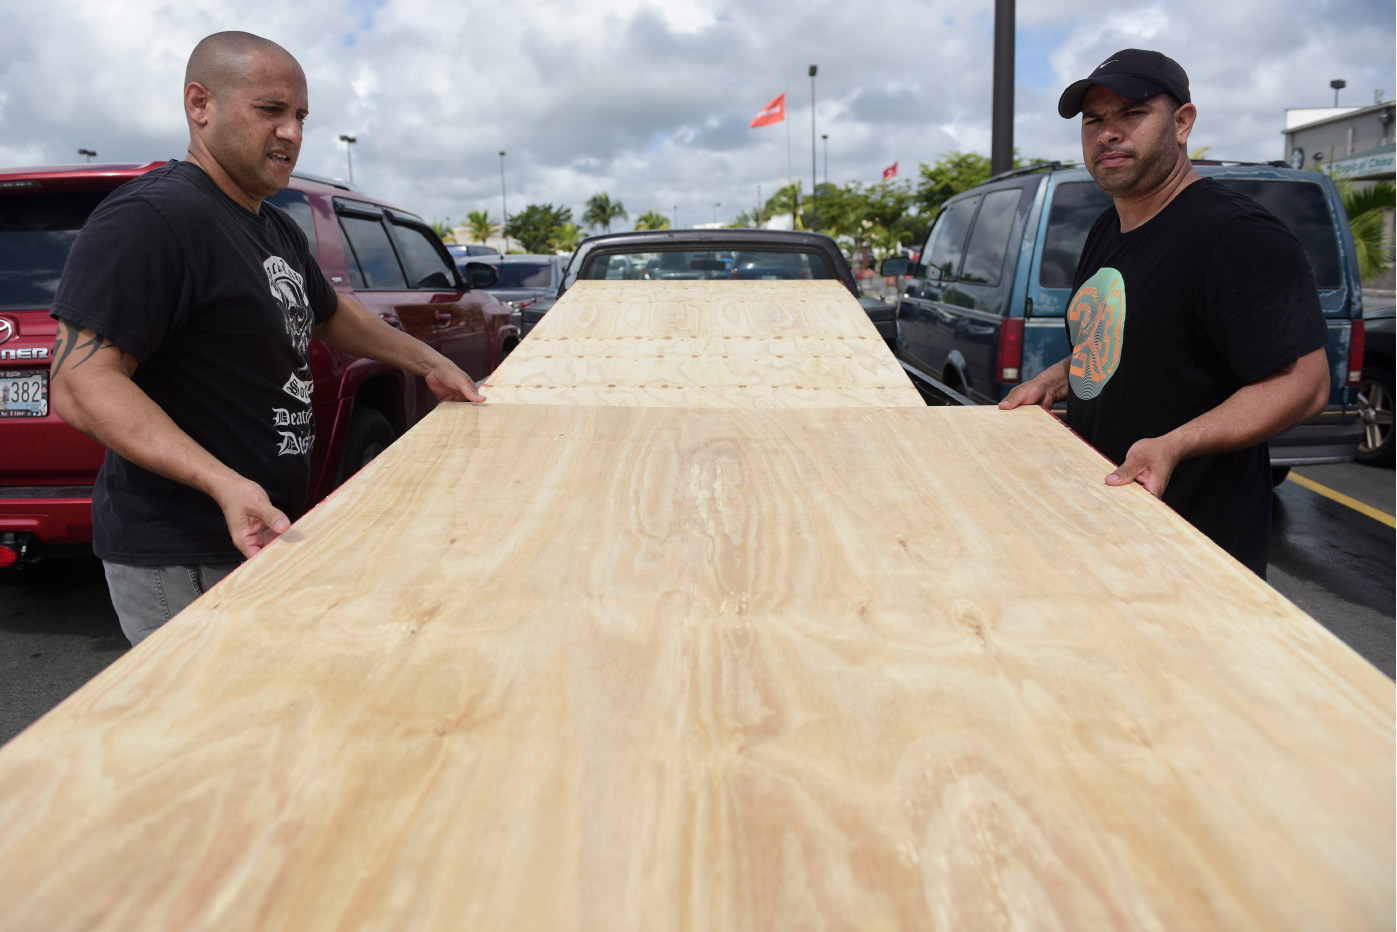 Luis Enrique Garcia, left, and Jose Rivera, load wood panels to be used for boarding up windows in preparation for Hurricane Irma, in Carolina, Puerto Rico, Tuesday, Sept. 5, 2017. Irma grew into a dangerous Category 5 storm, the most powerful seen in the Atlantic in over a decade, and roared toward islands in the northeast Caribbean Tuesday. (AP Photo/Carlos Giusti)